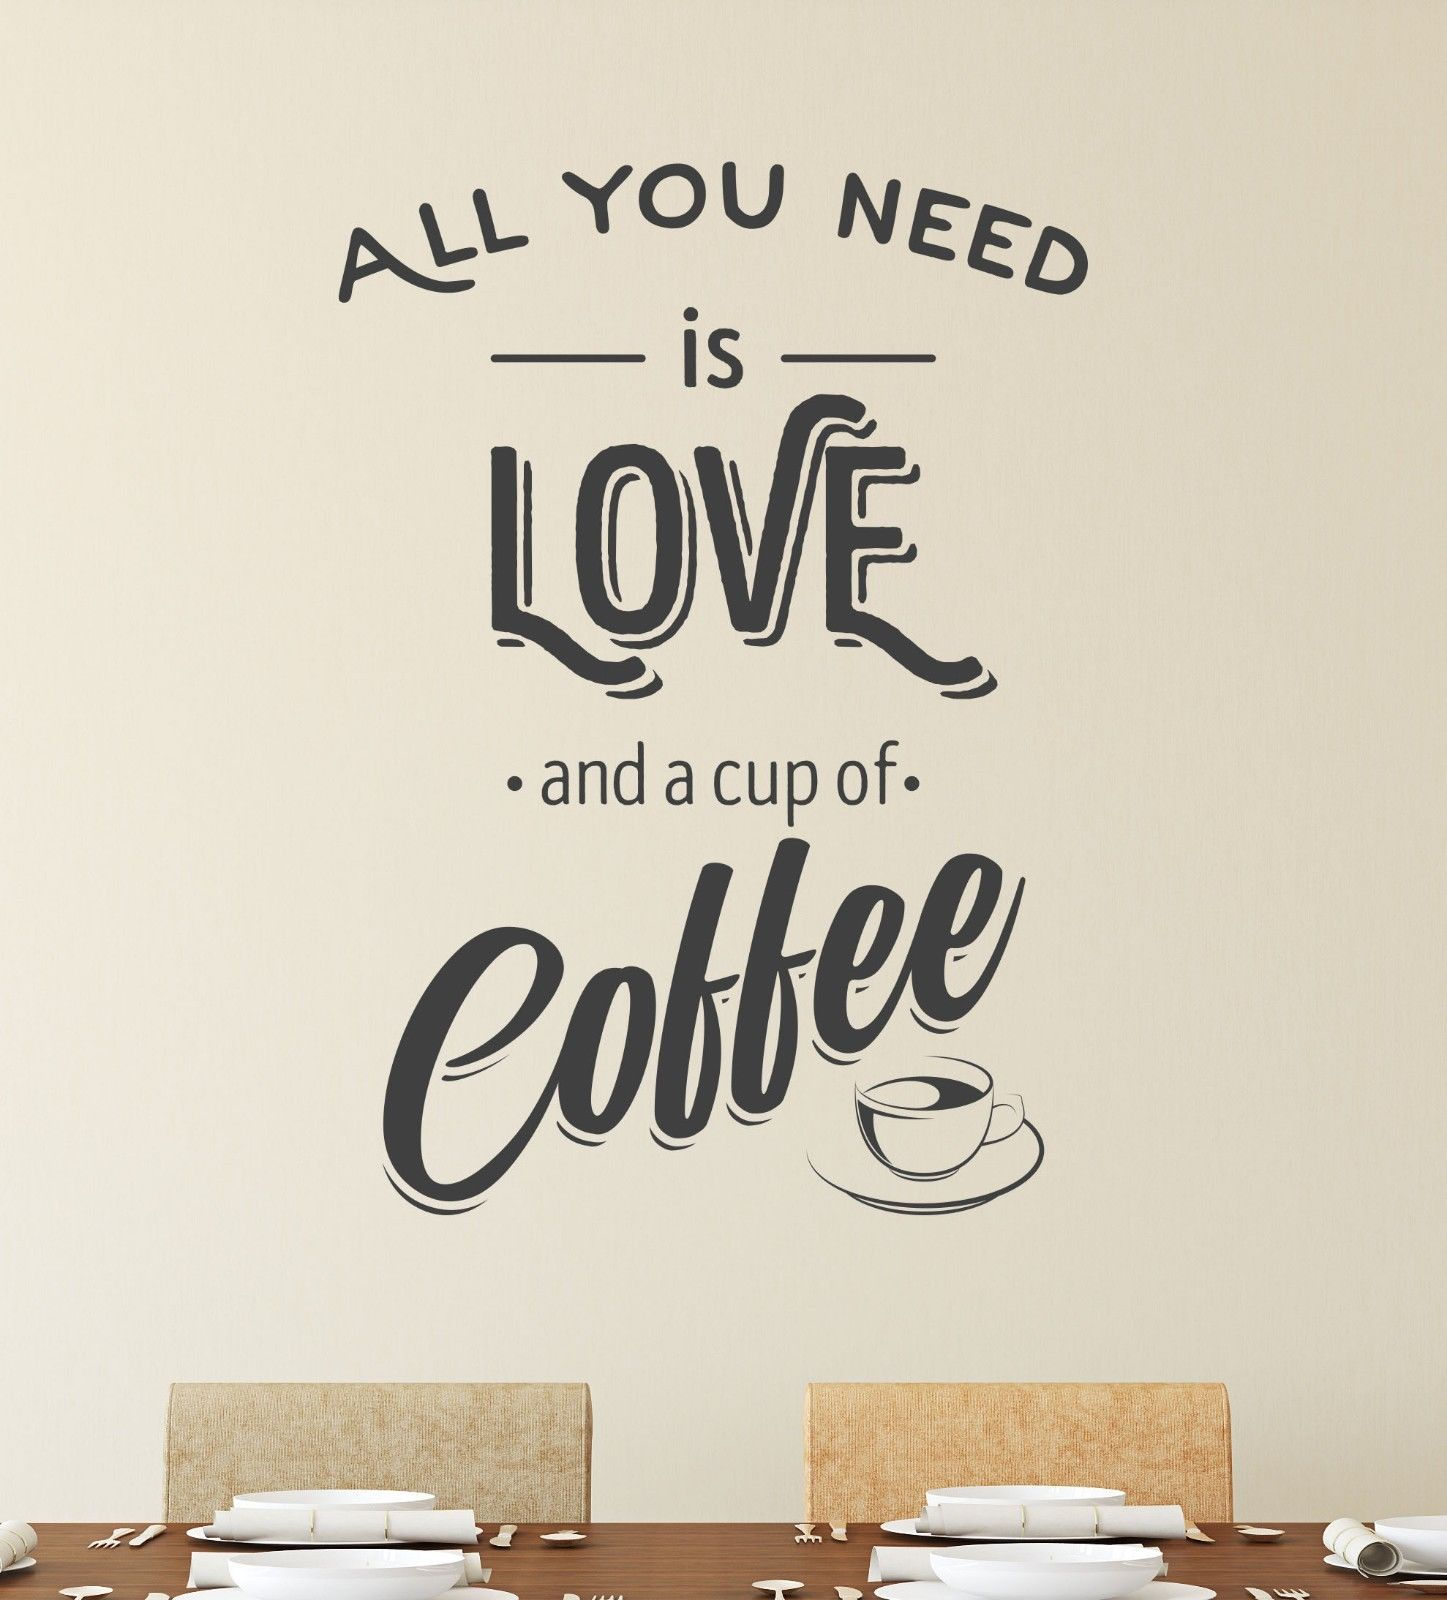 All you need is coffee wall sticker vinyl